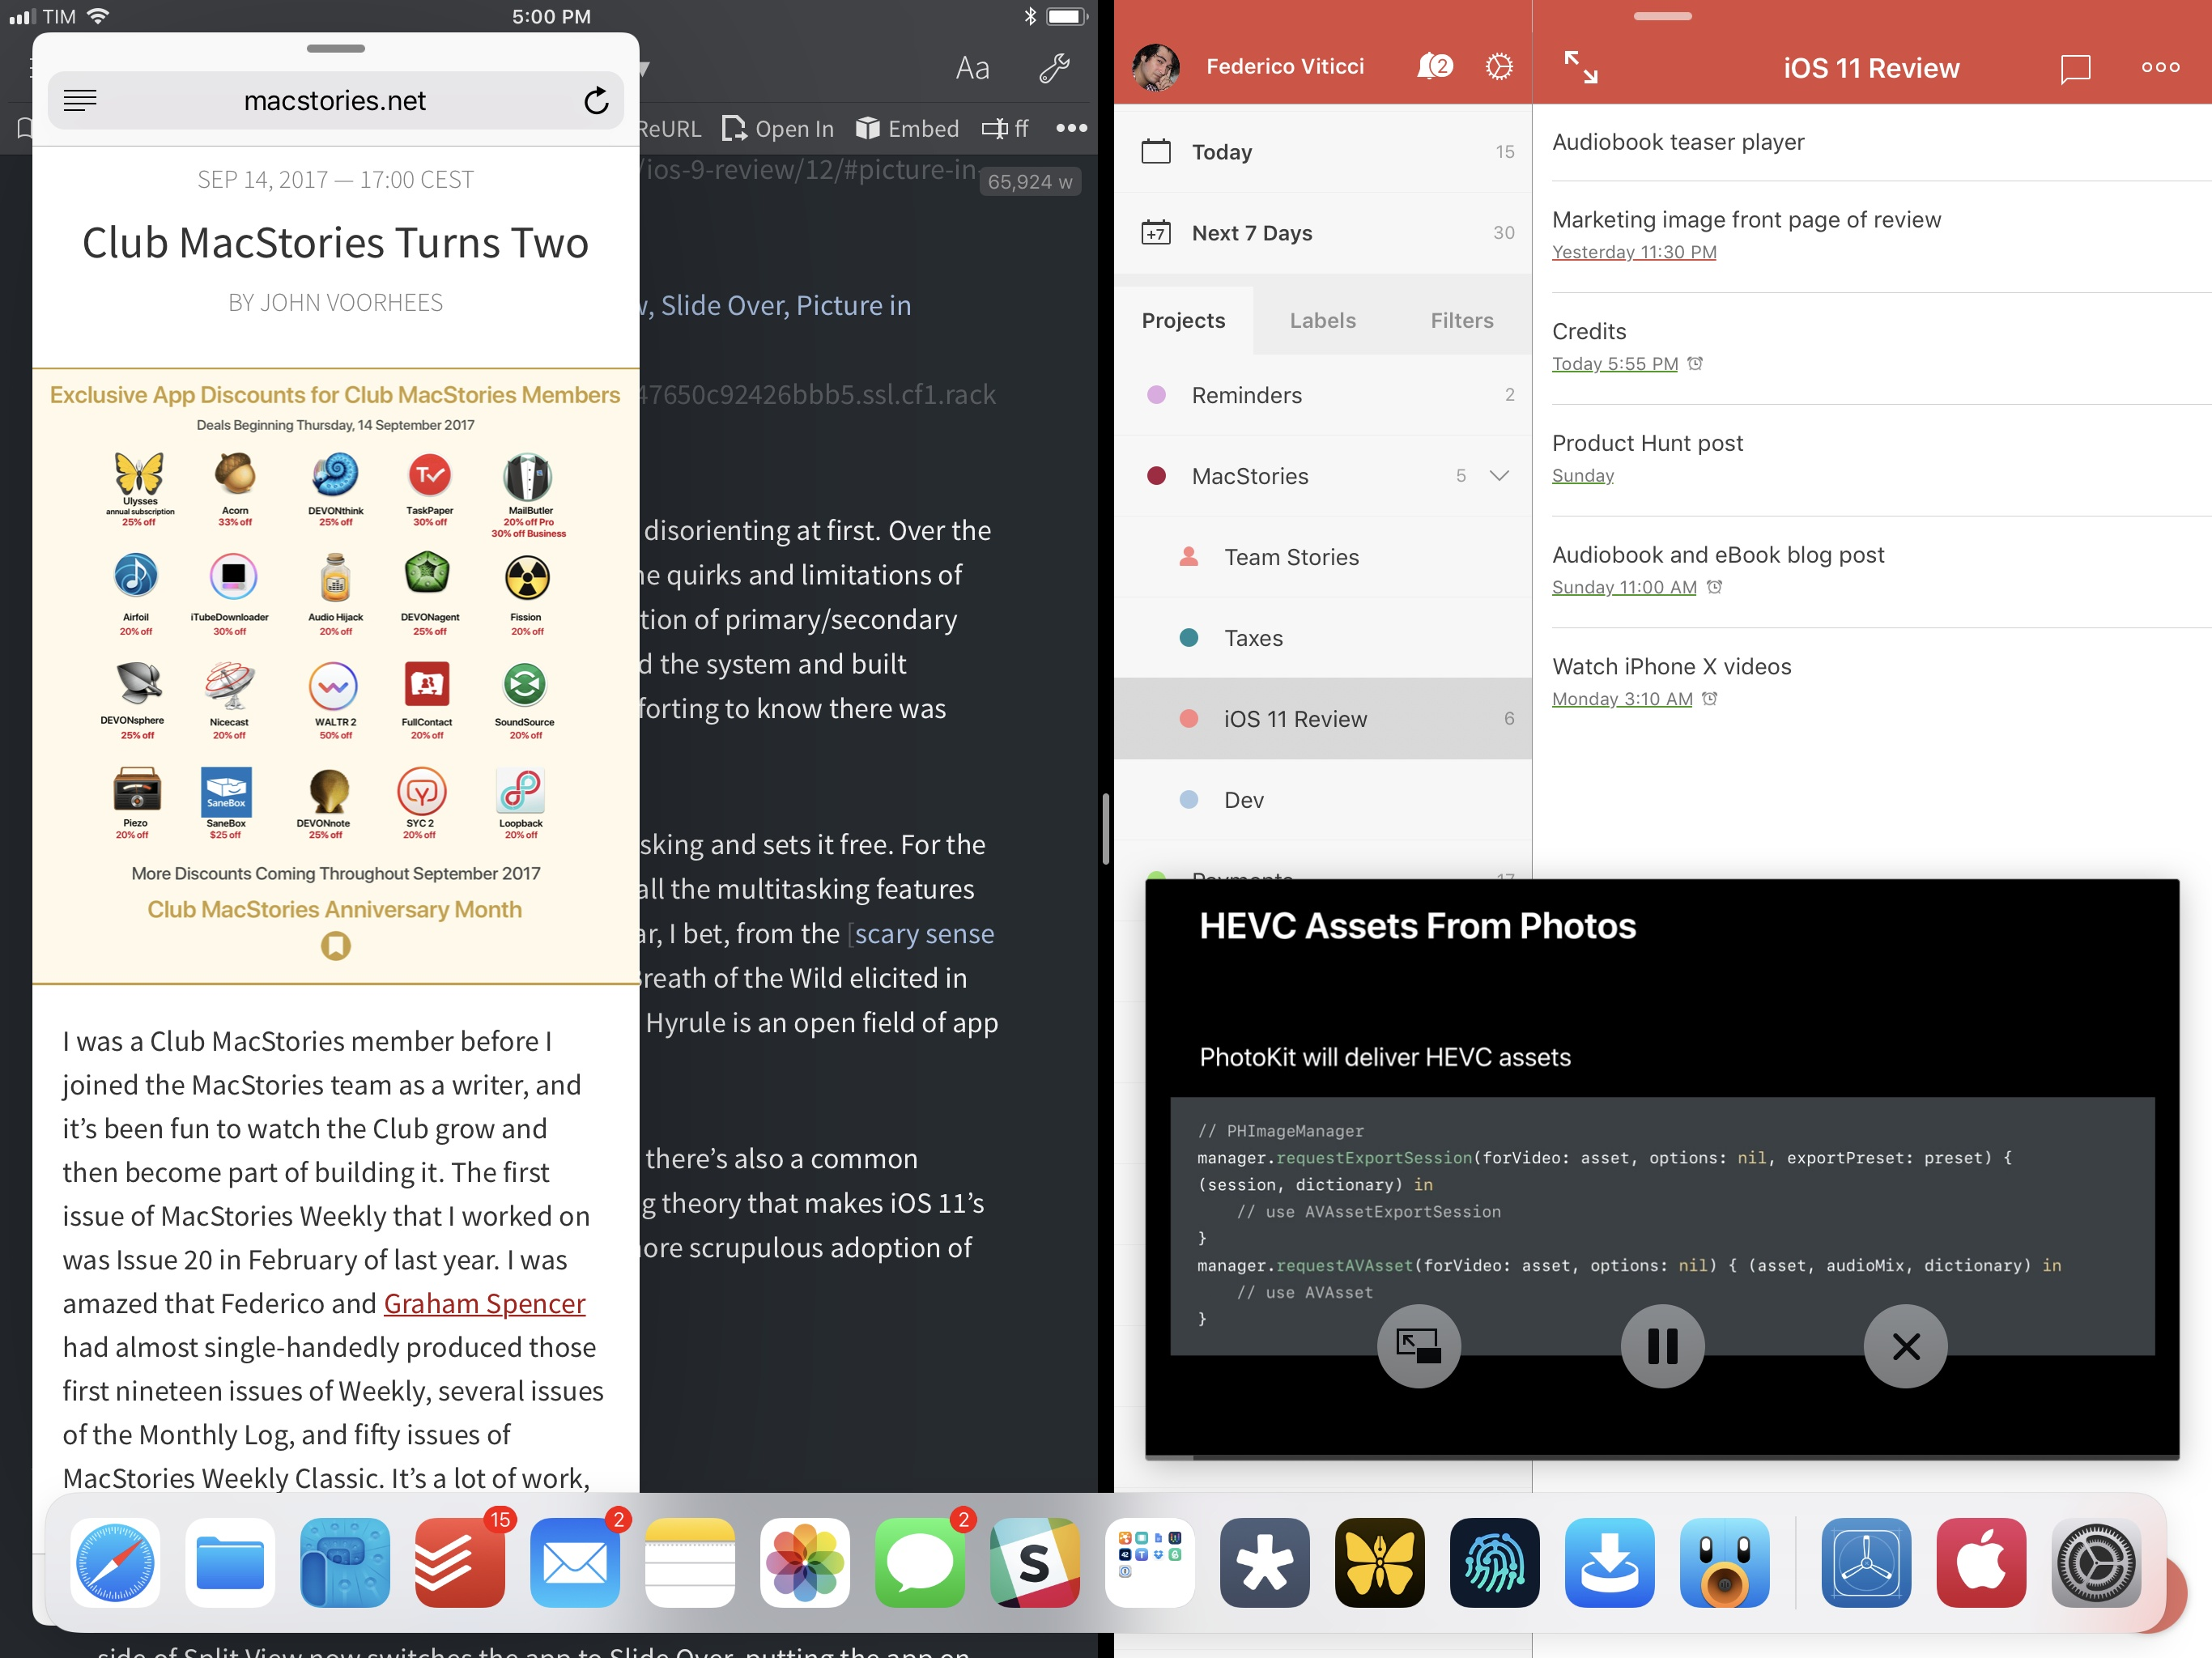 The new age of iPad multitasking: Split View, Slide Over, Picture in Picture, and the dock.